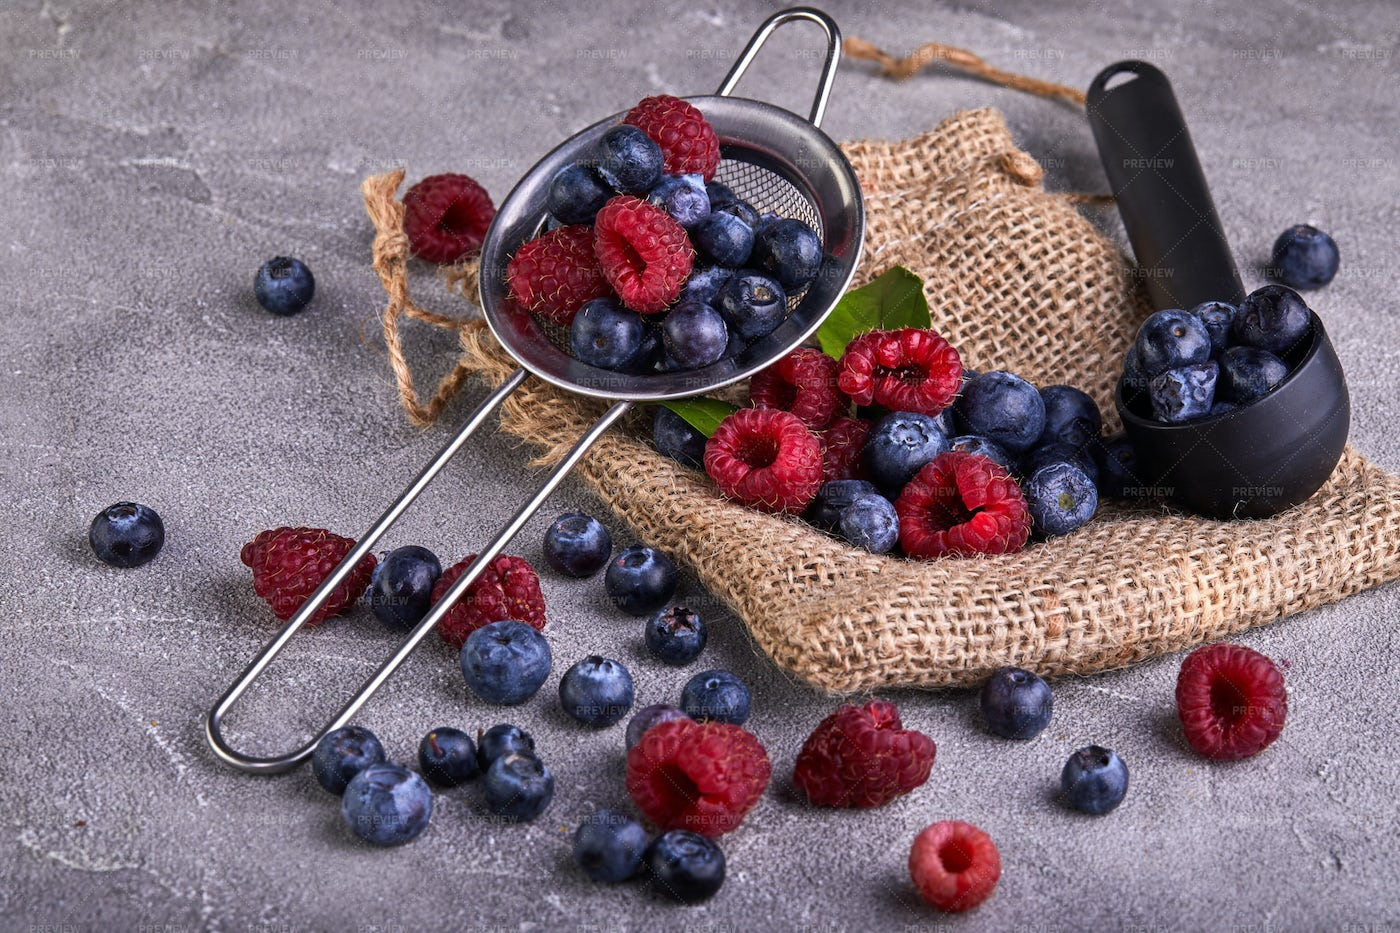 Washed Blueberries And Raspberries: Stock Photos